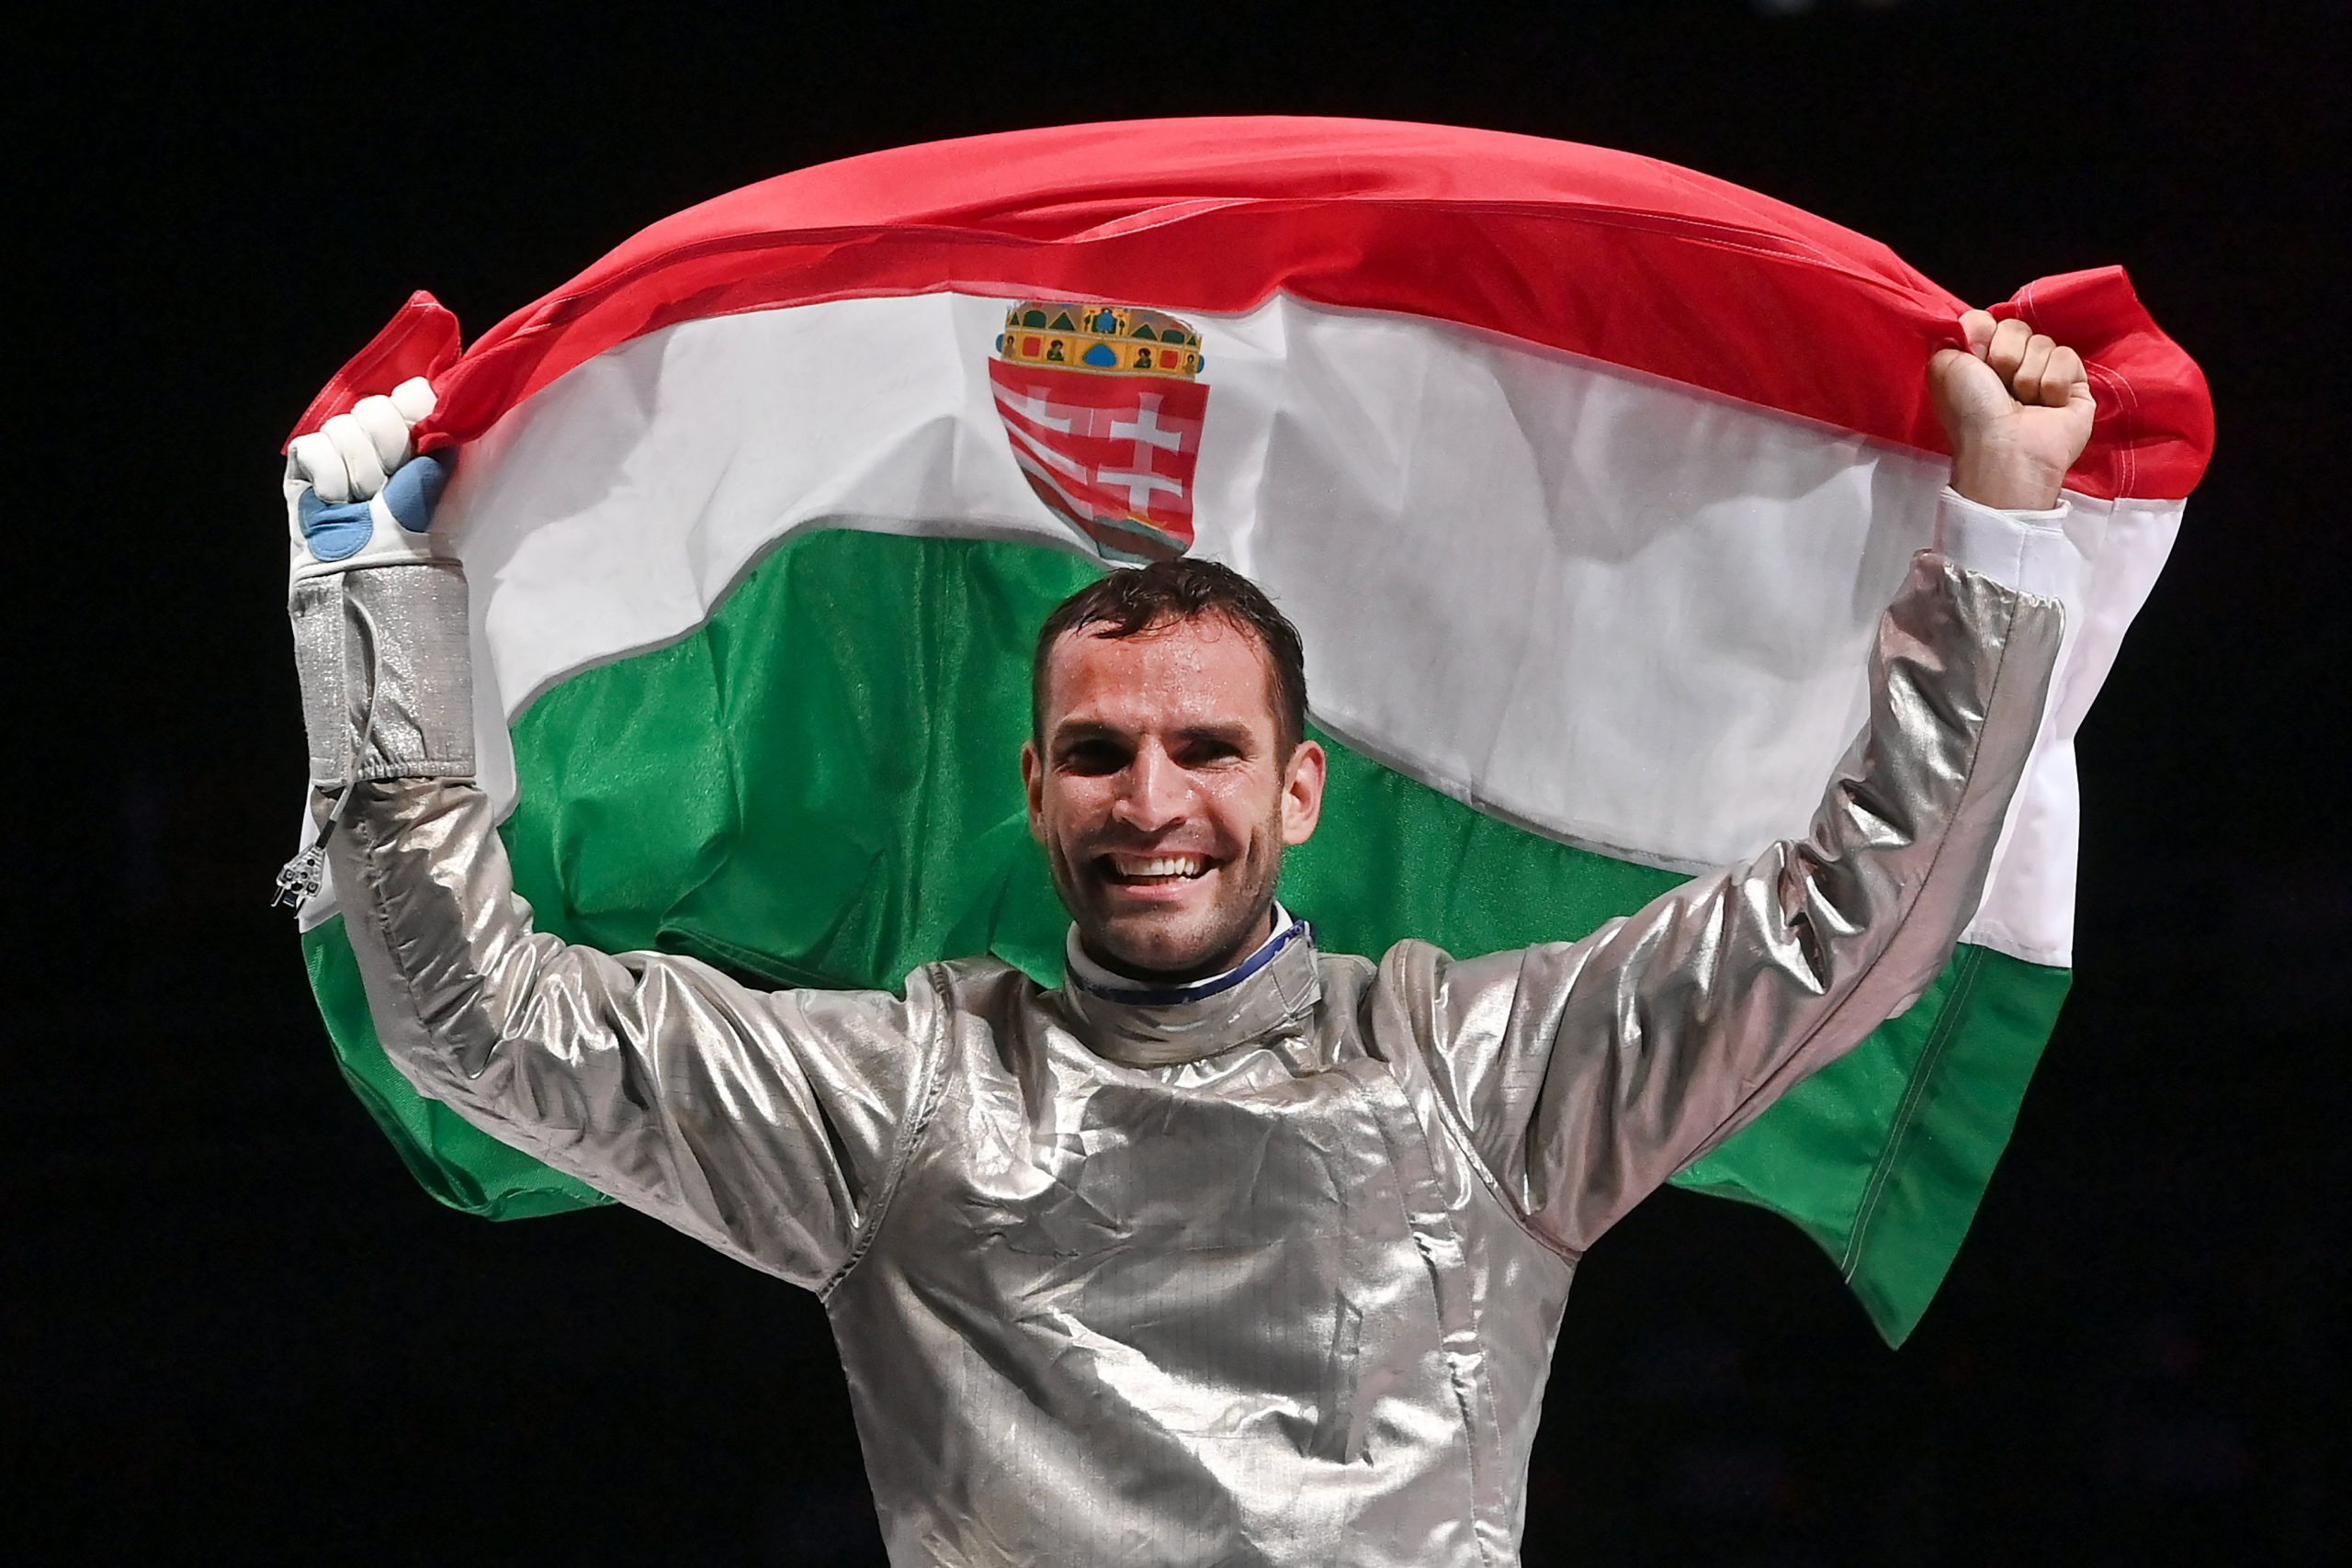 The Hungarian Tricolor at the 2020 Tokyo Olympics - a Photo Gallery